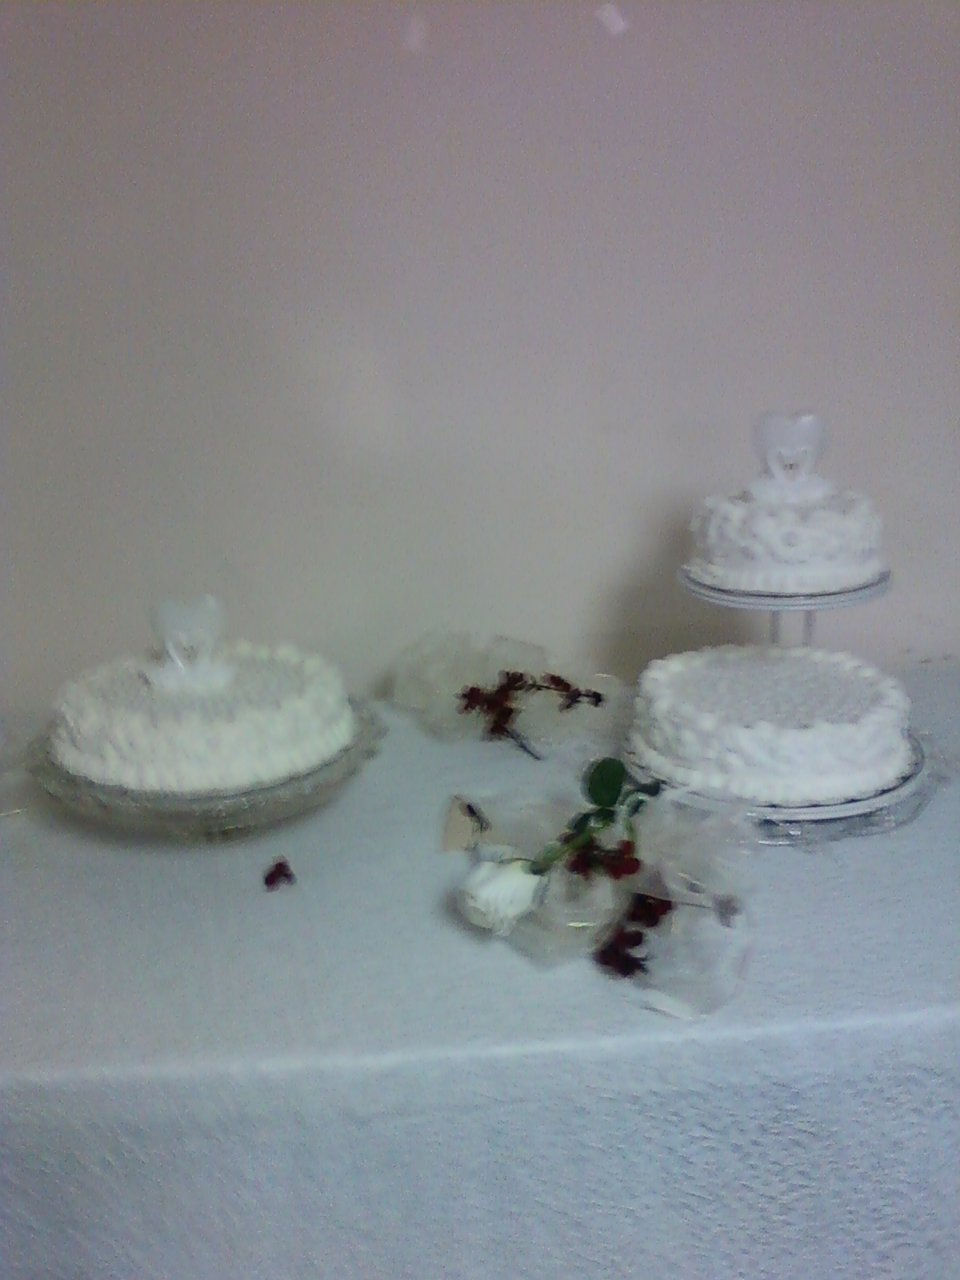 jamaica wedding cake icing wix geo jays 1 created by geojay based on my flowers 16580